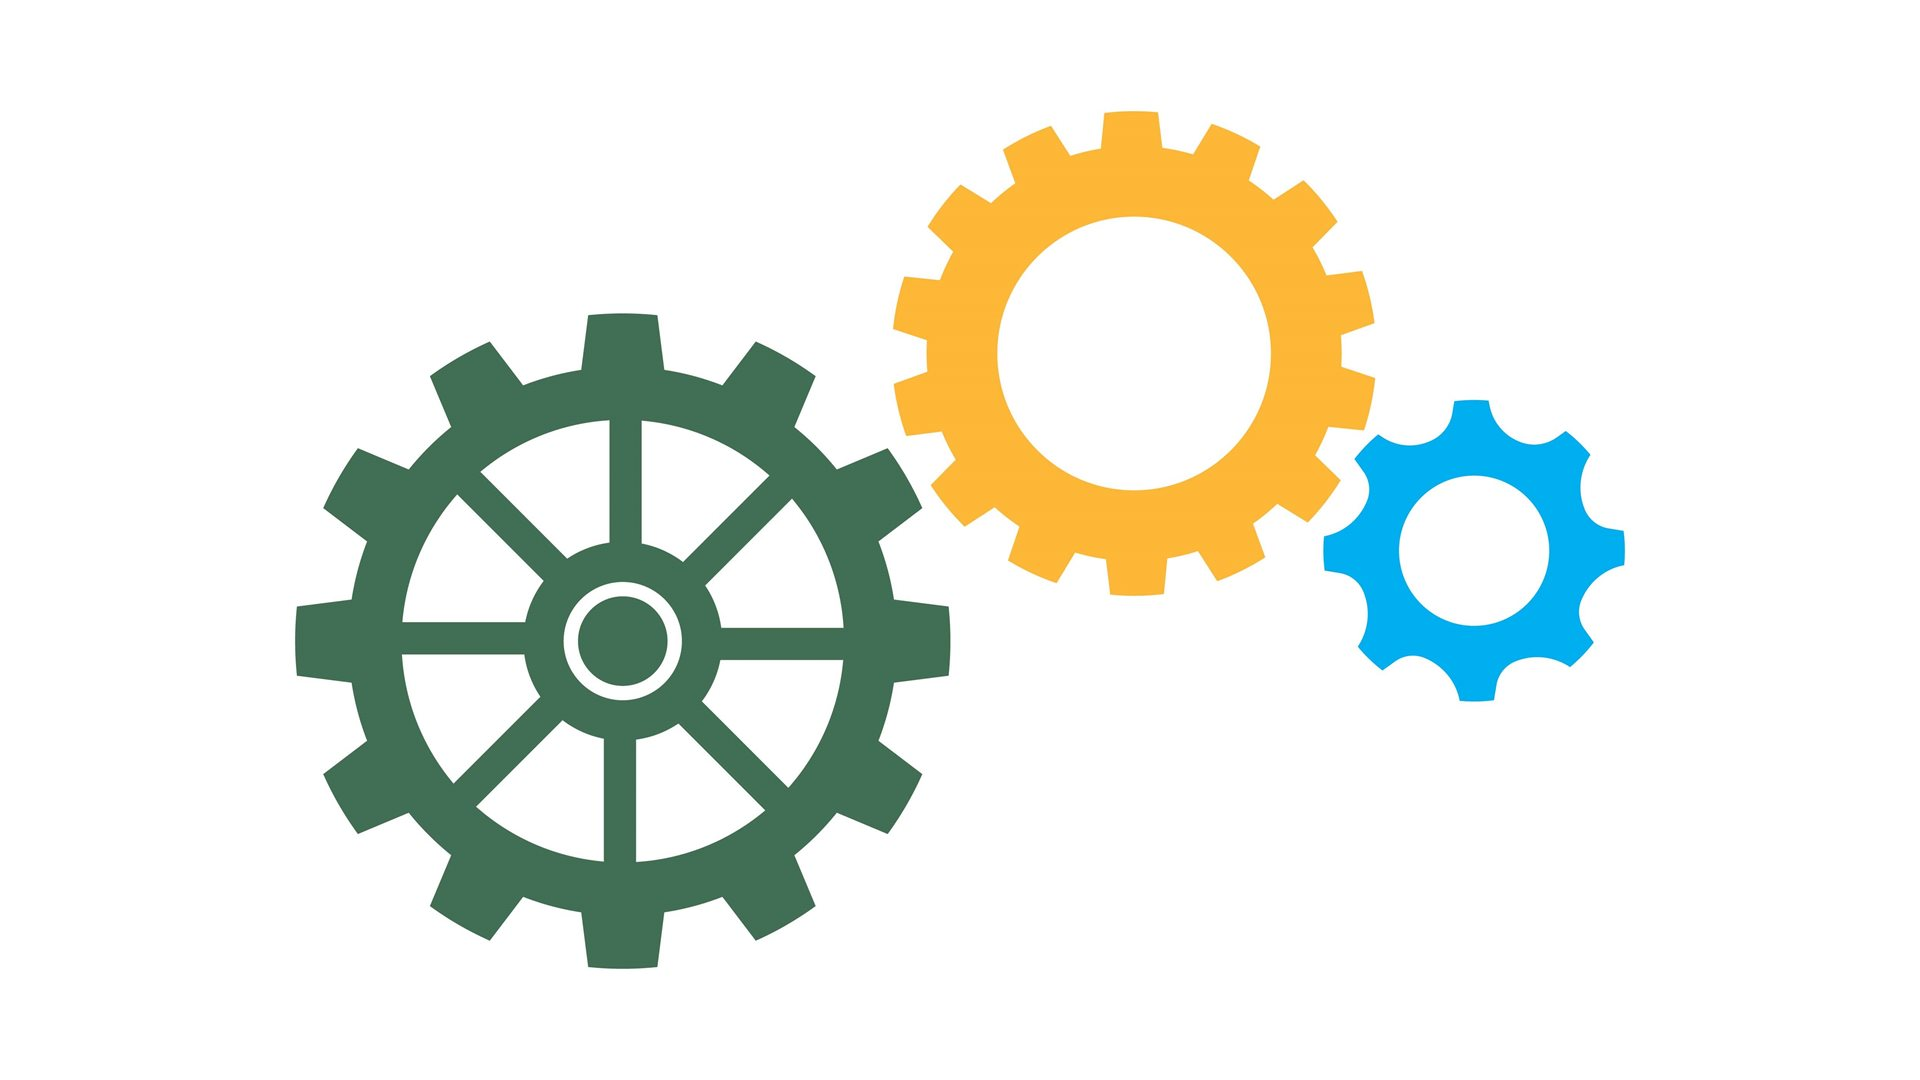 Green, yellow and blue gears against a white background